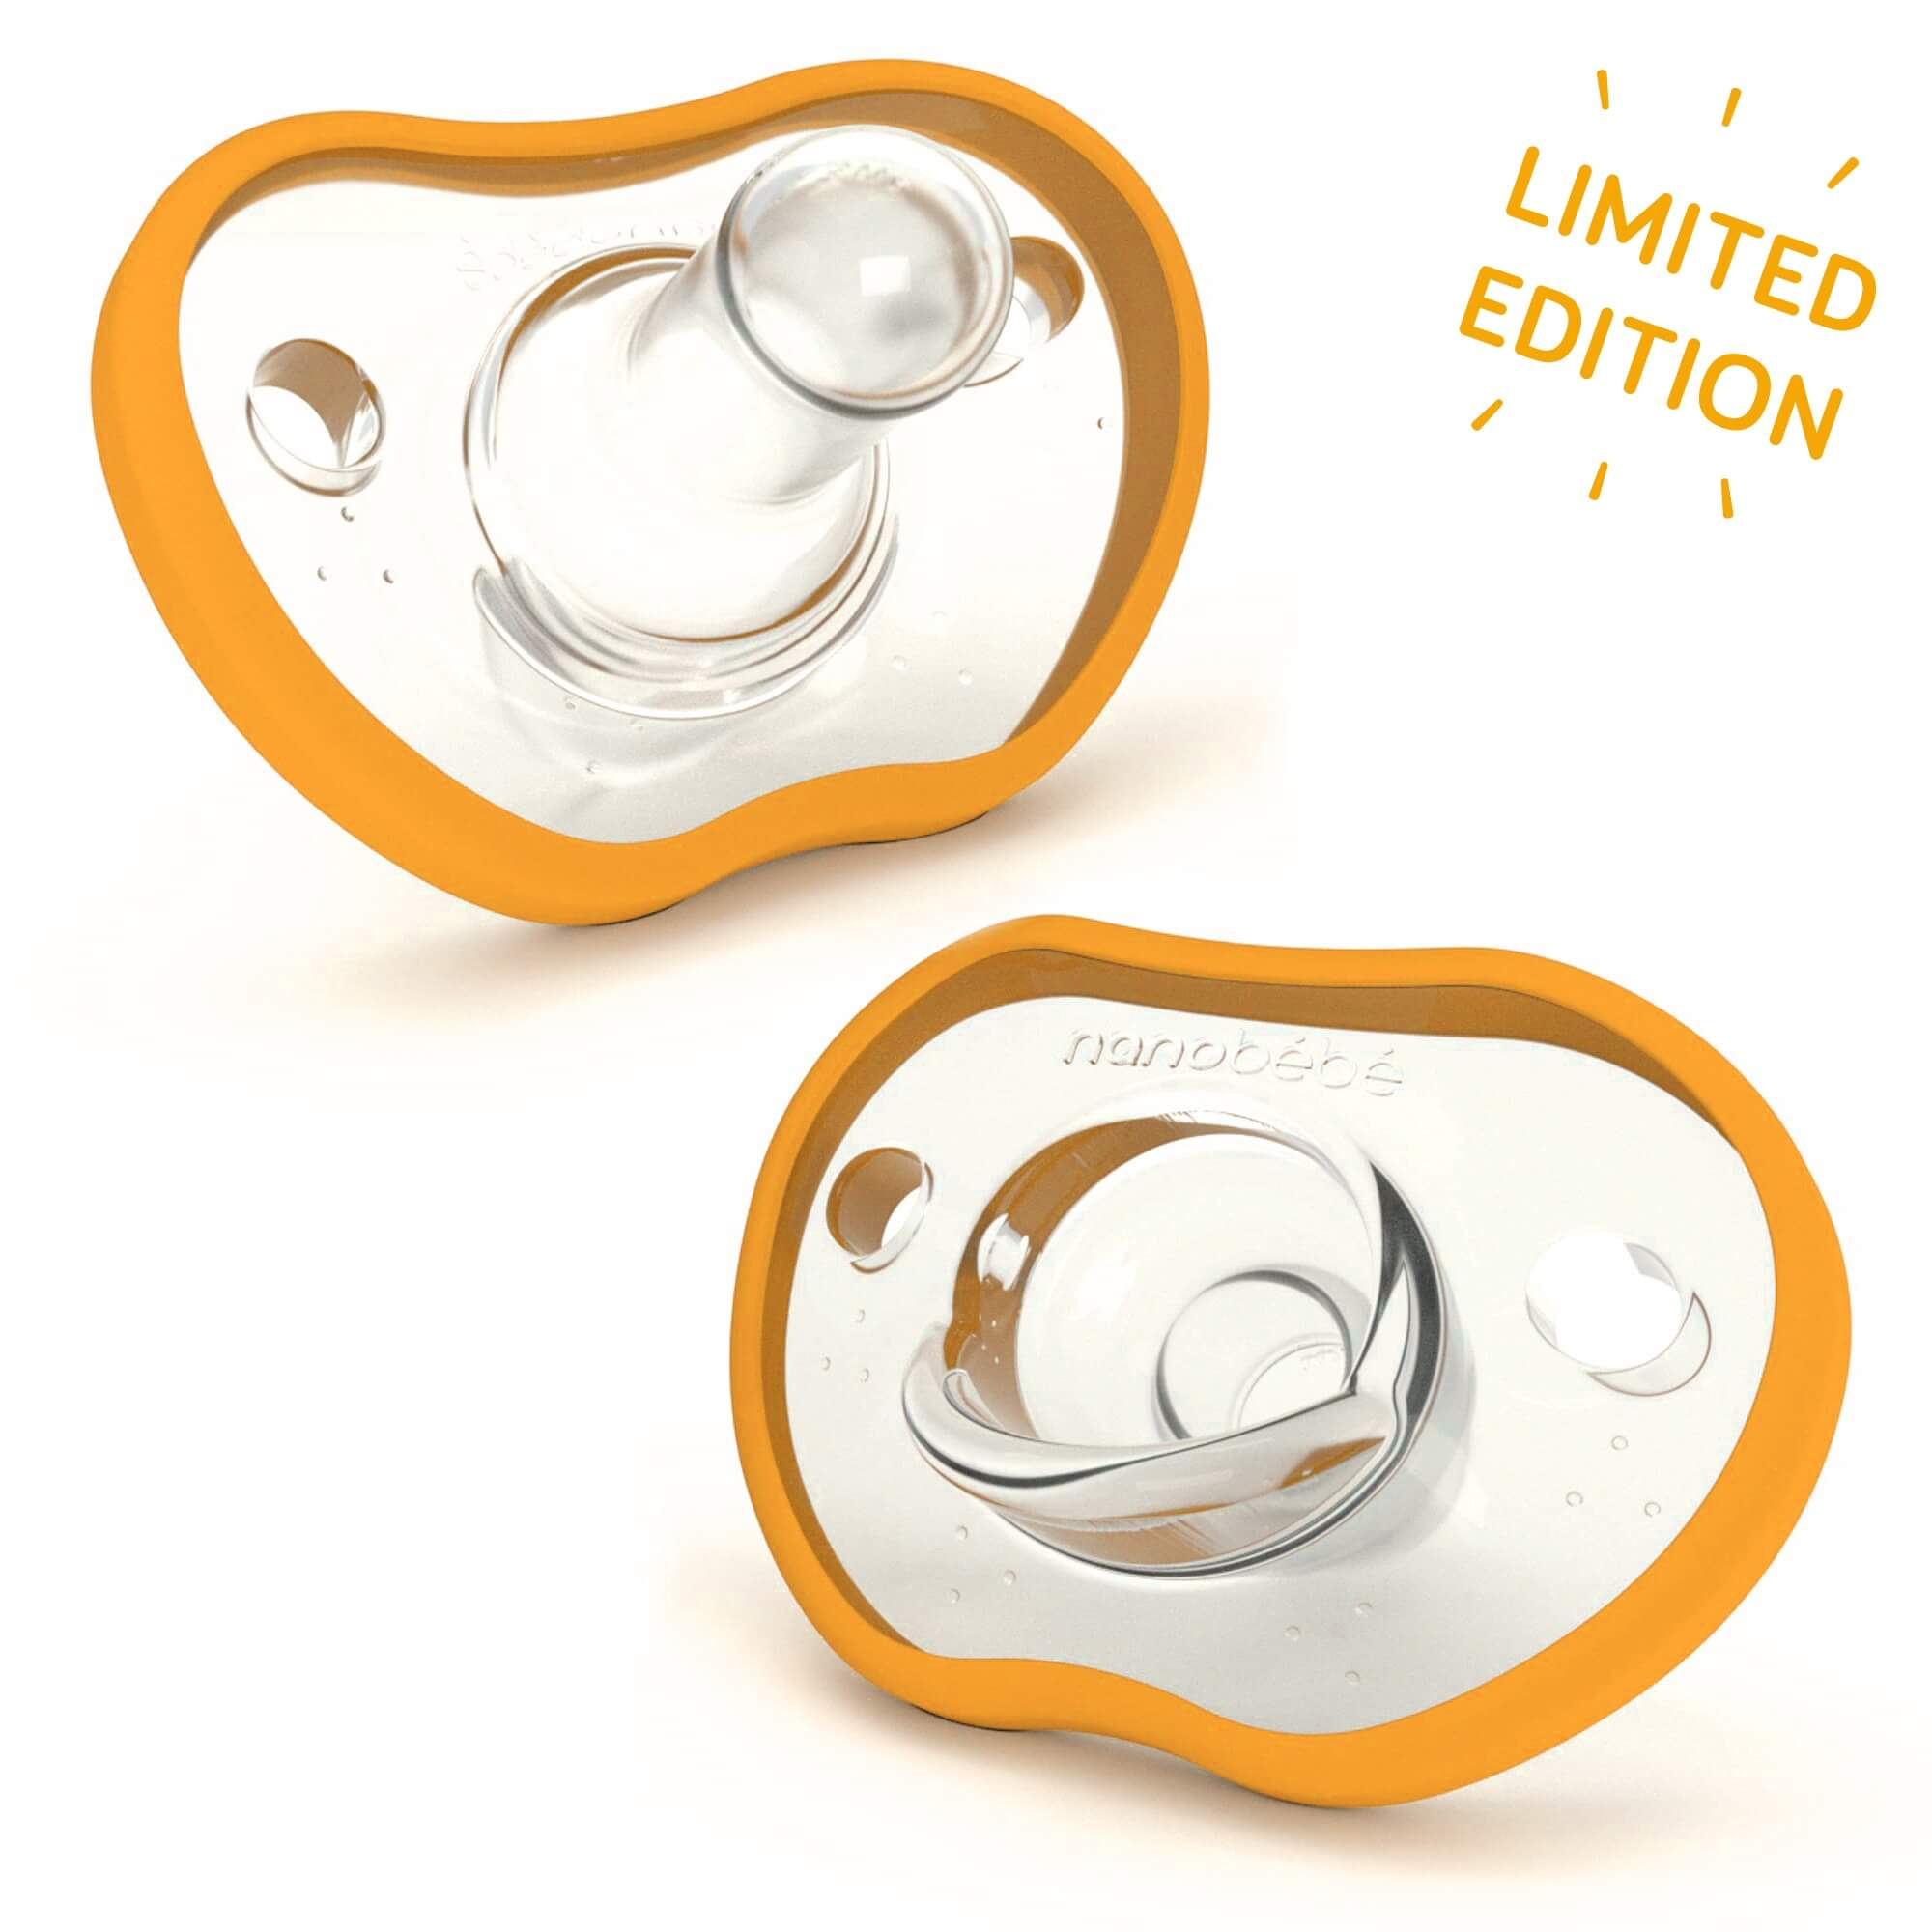 Nanobébé US 3m+ / Tangerine Limited-Edition Tangerine Flexy Pacifiers